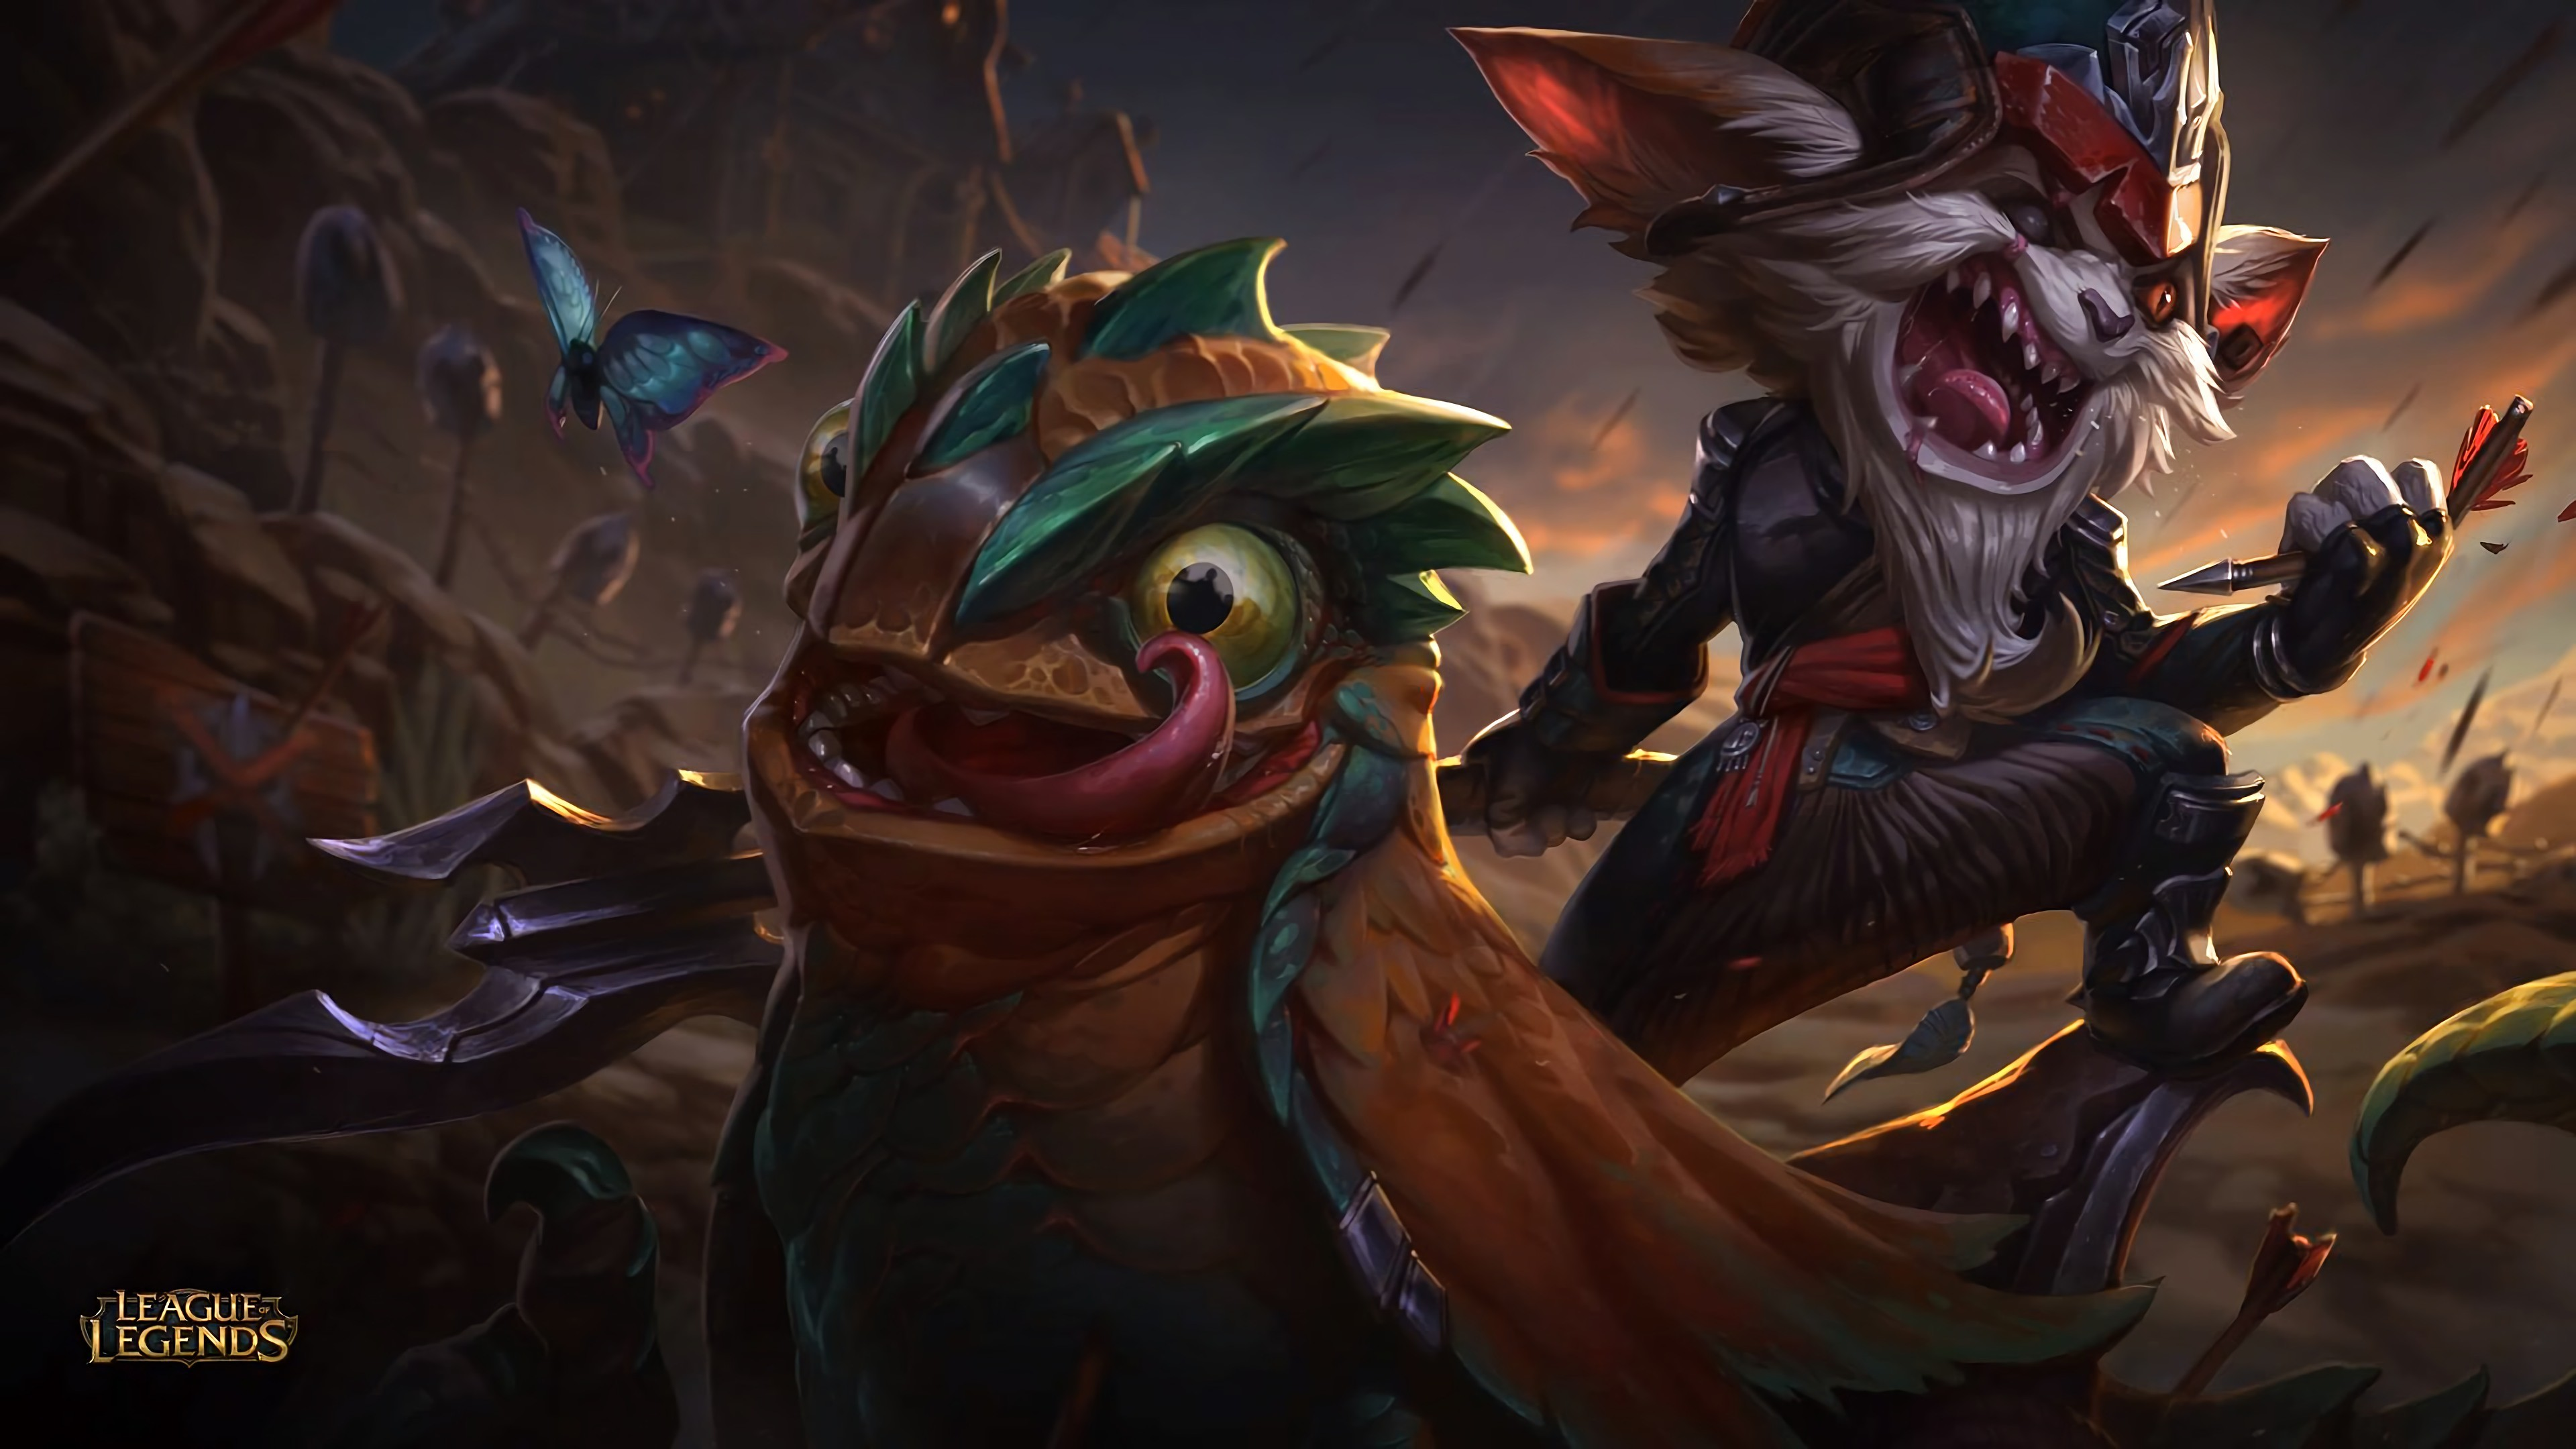 3840x2160 Video Game - League Of Legends Video Game Kled (League Of Legends) Wallpaper